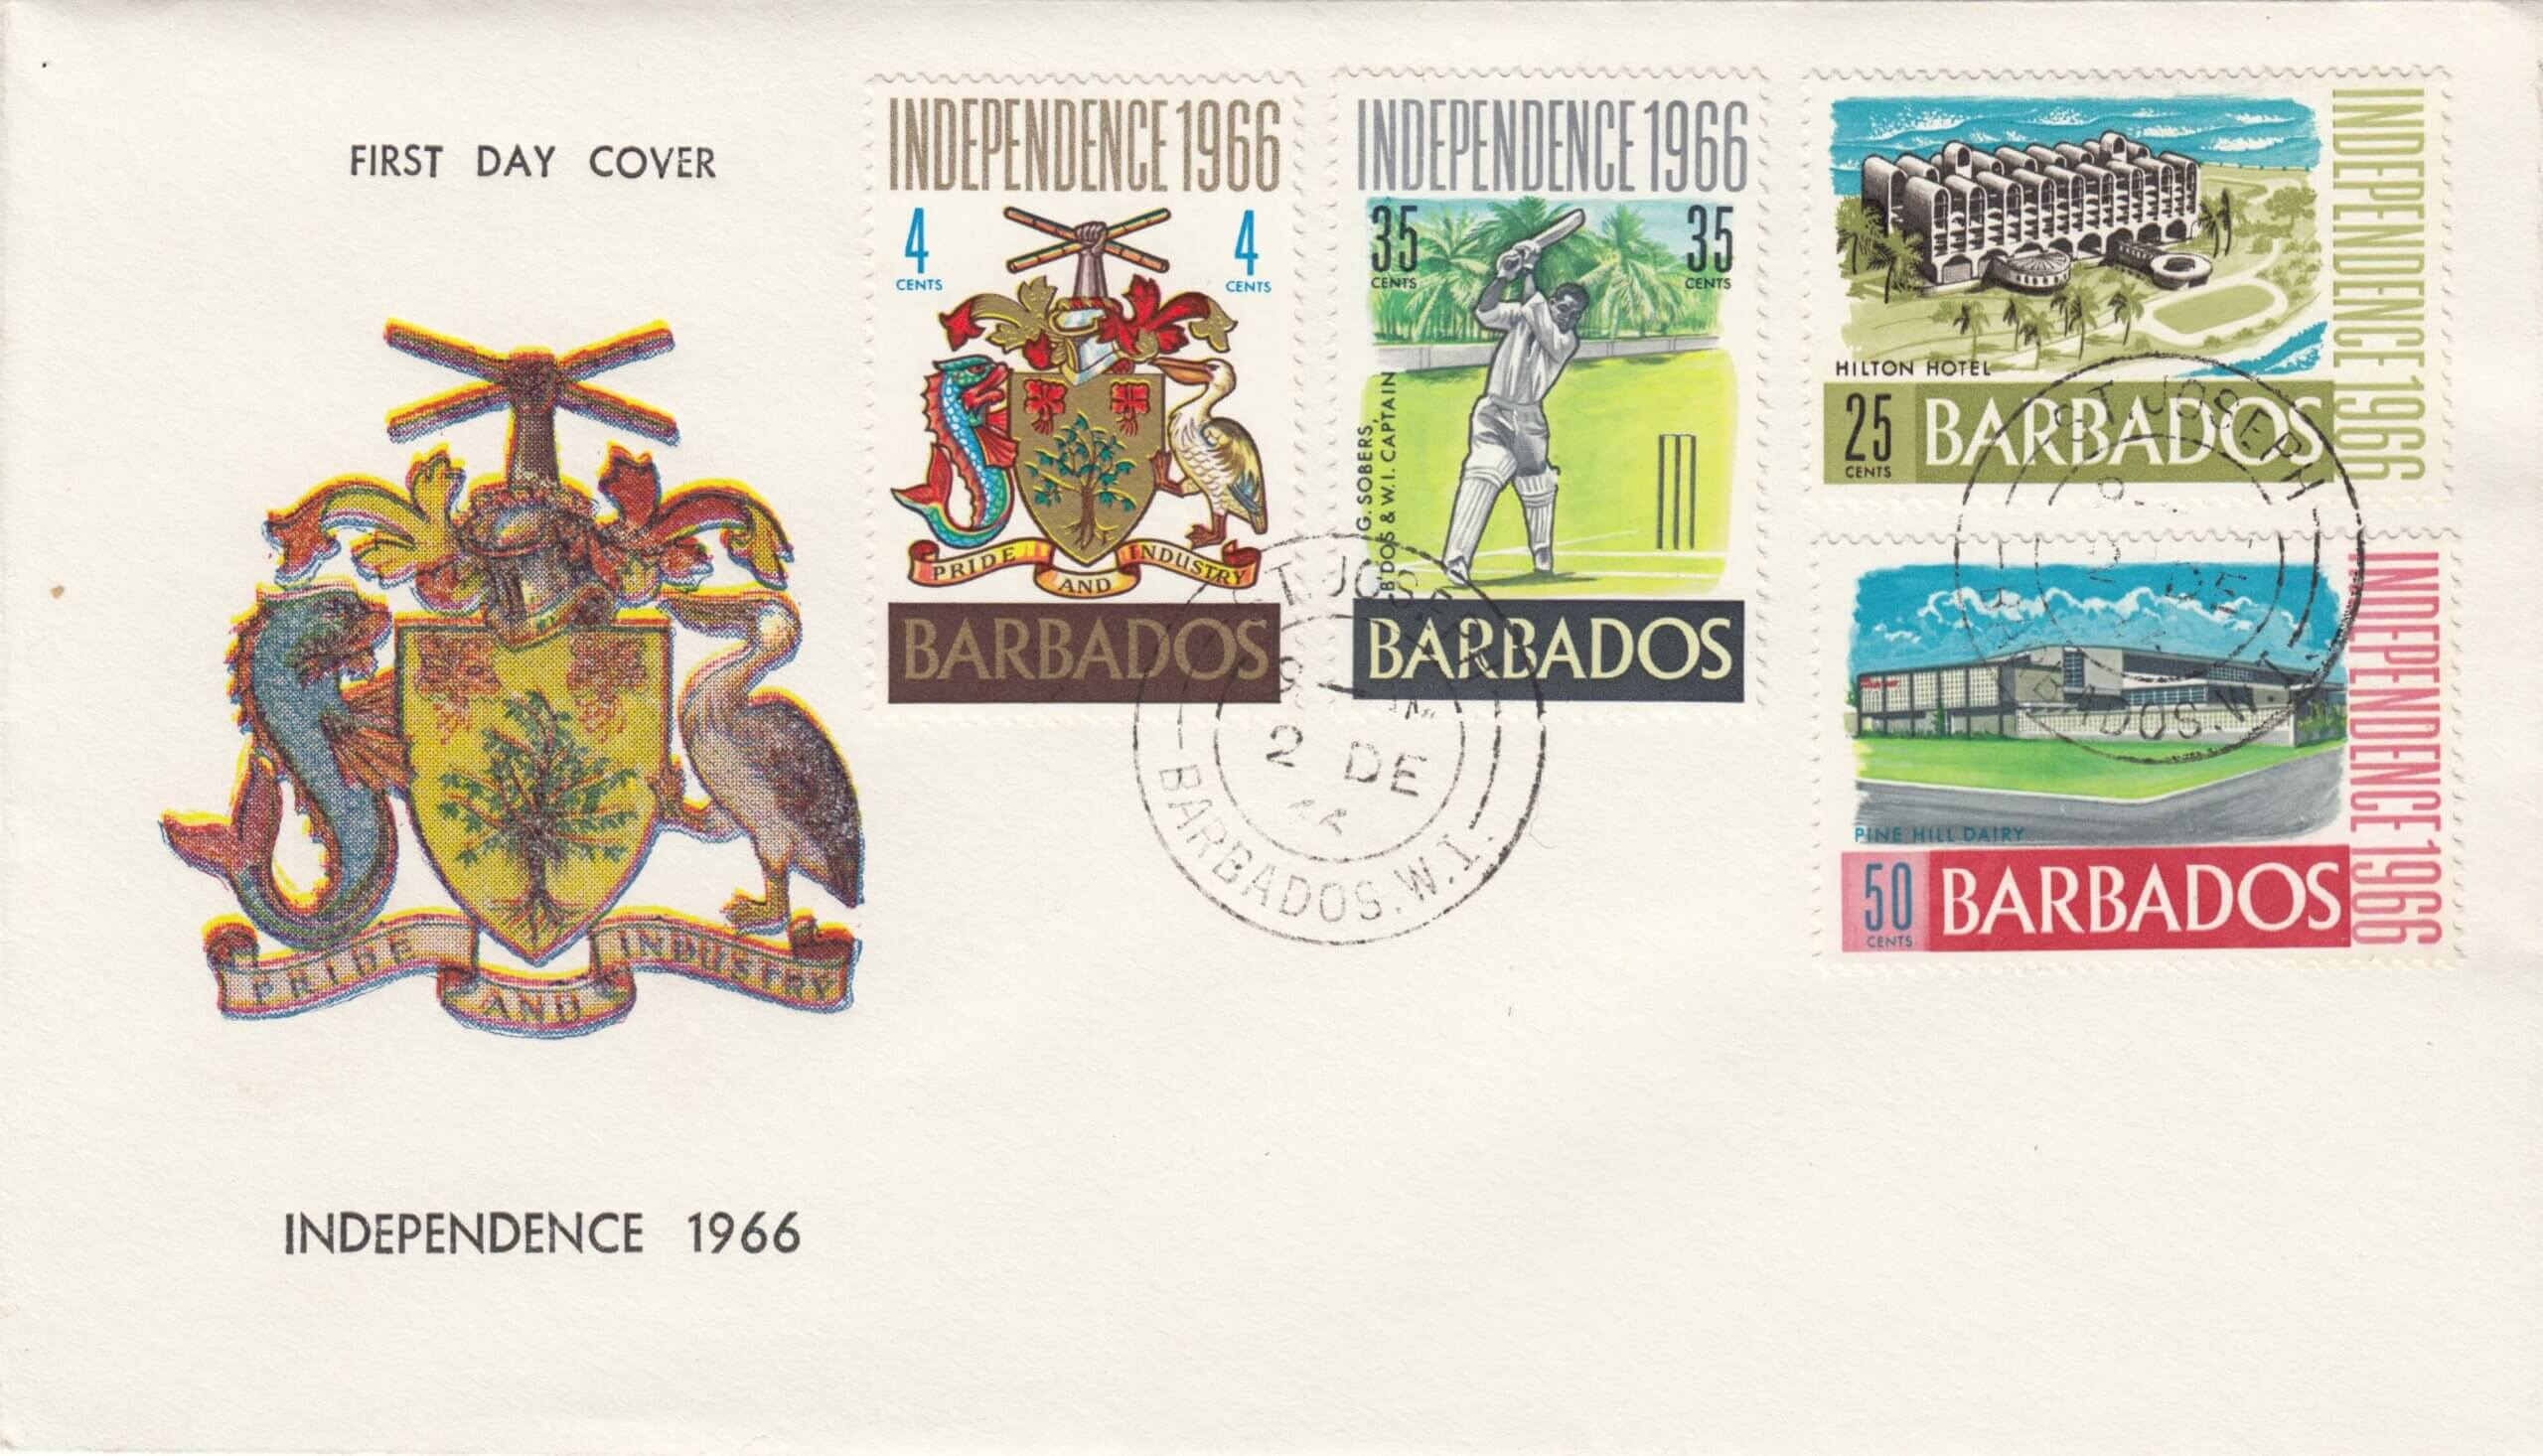 Barbados Independence 1966 FDC